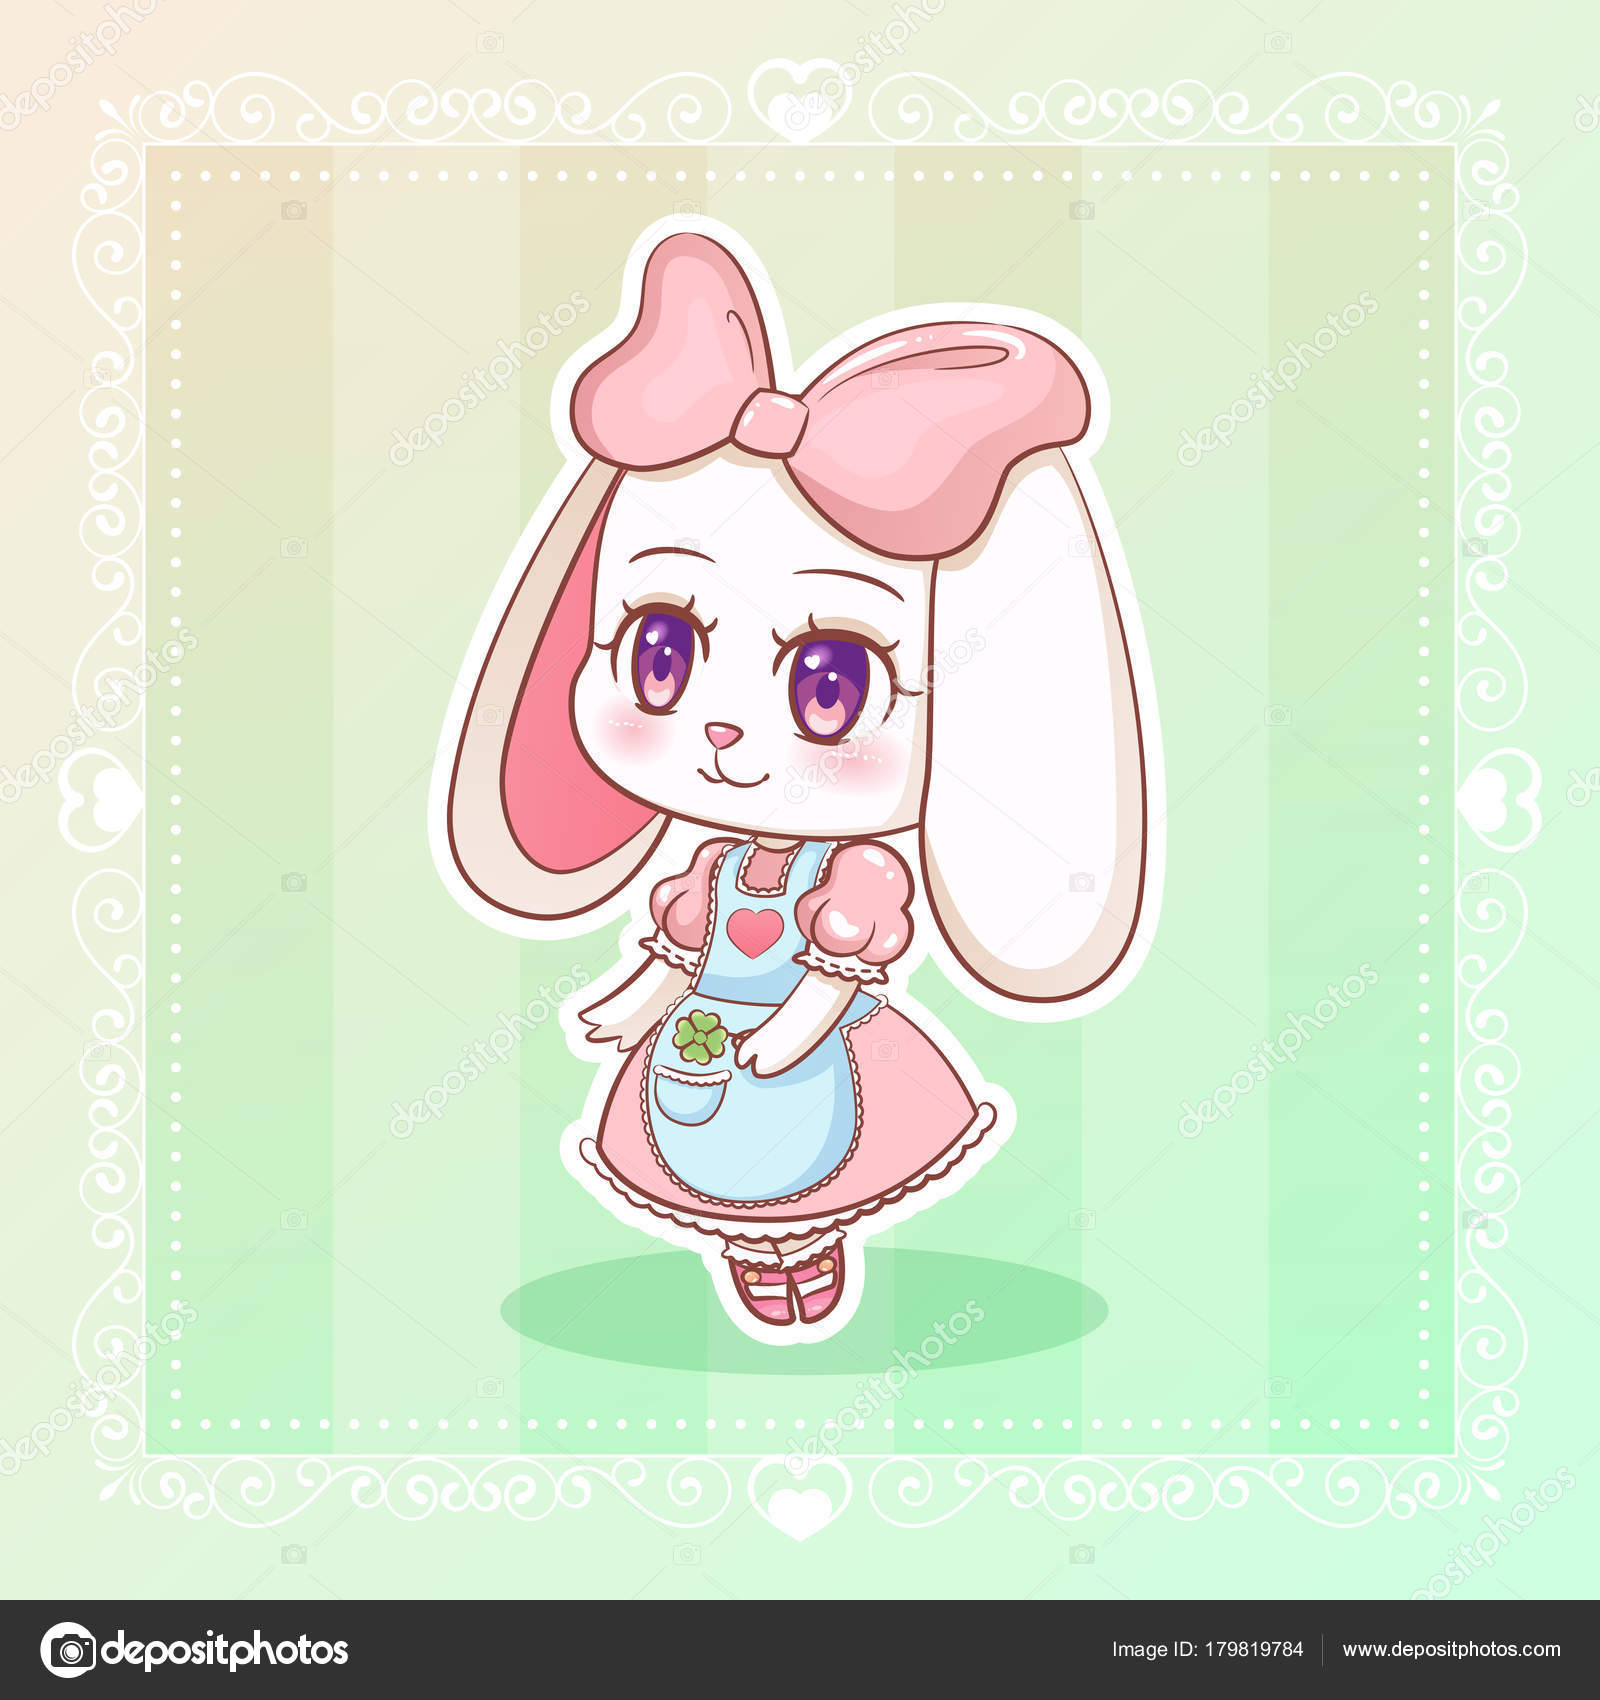 Kawaii Anime Girl Wallpaper Sweet Rabbit Little Cute